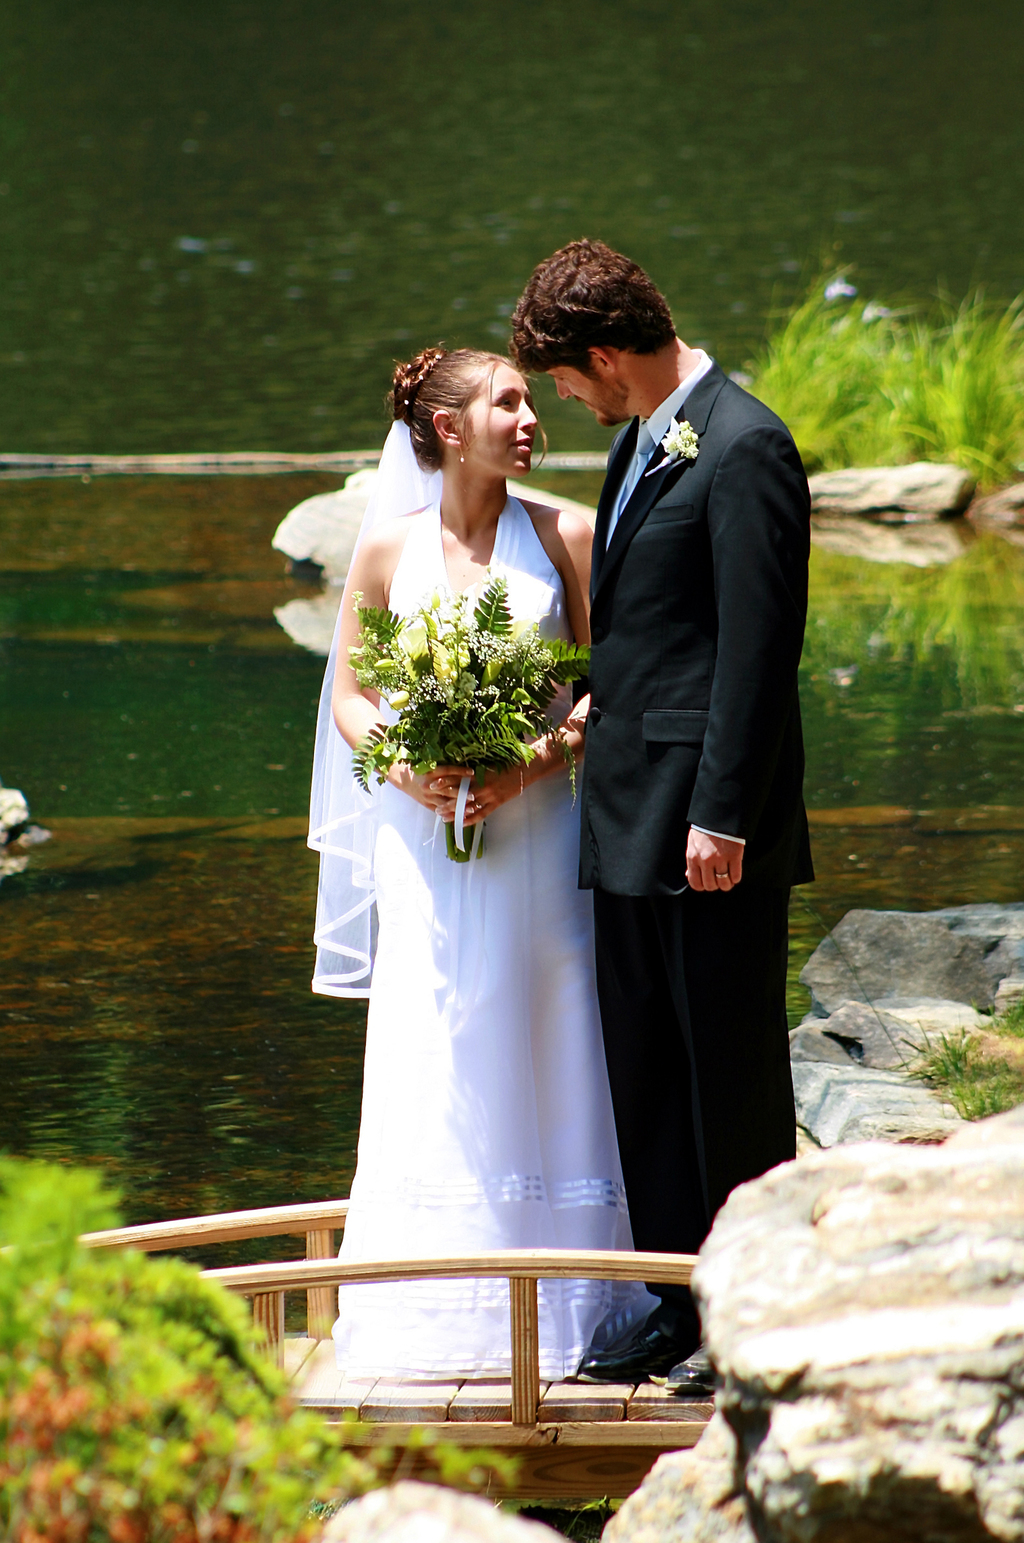 Asheville_20wedding_20photography_20formal_20portraits_20_23_.original.full